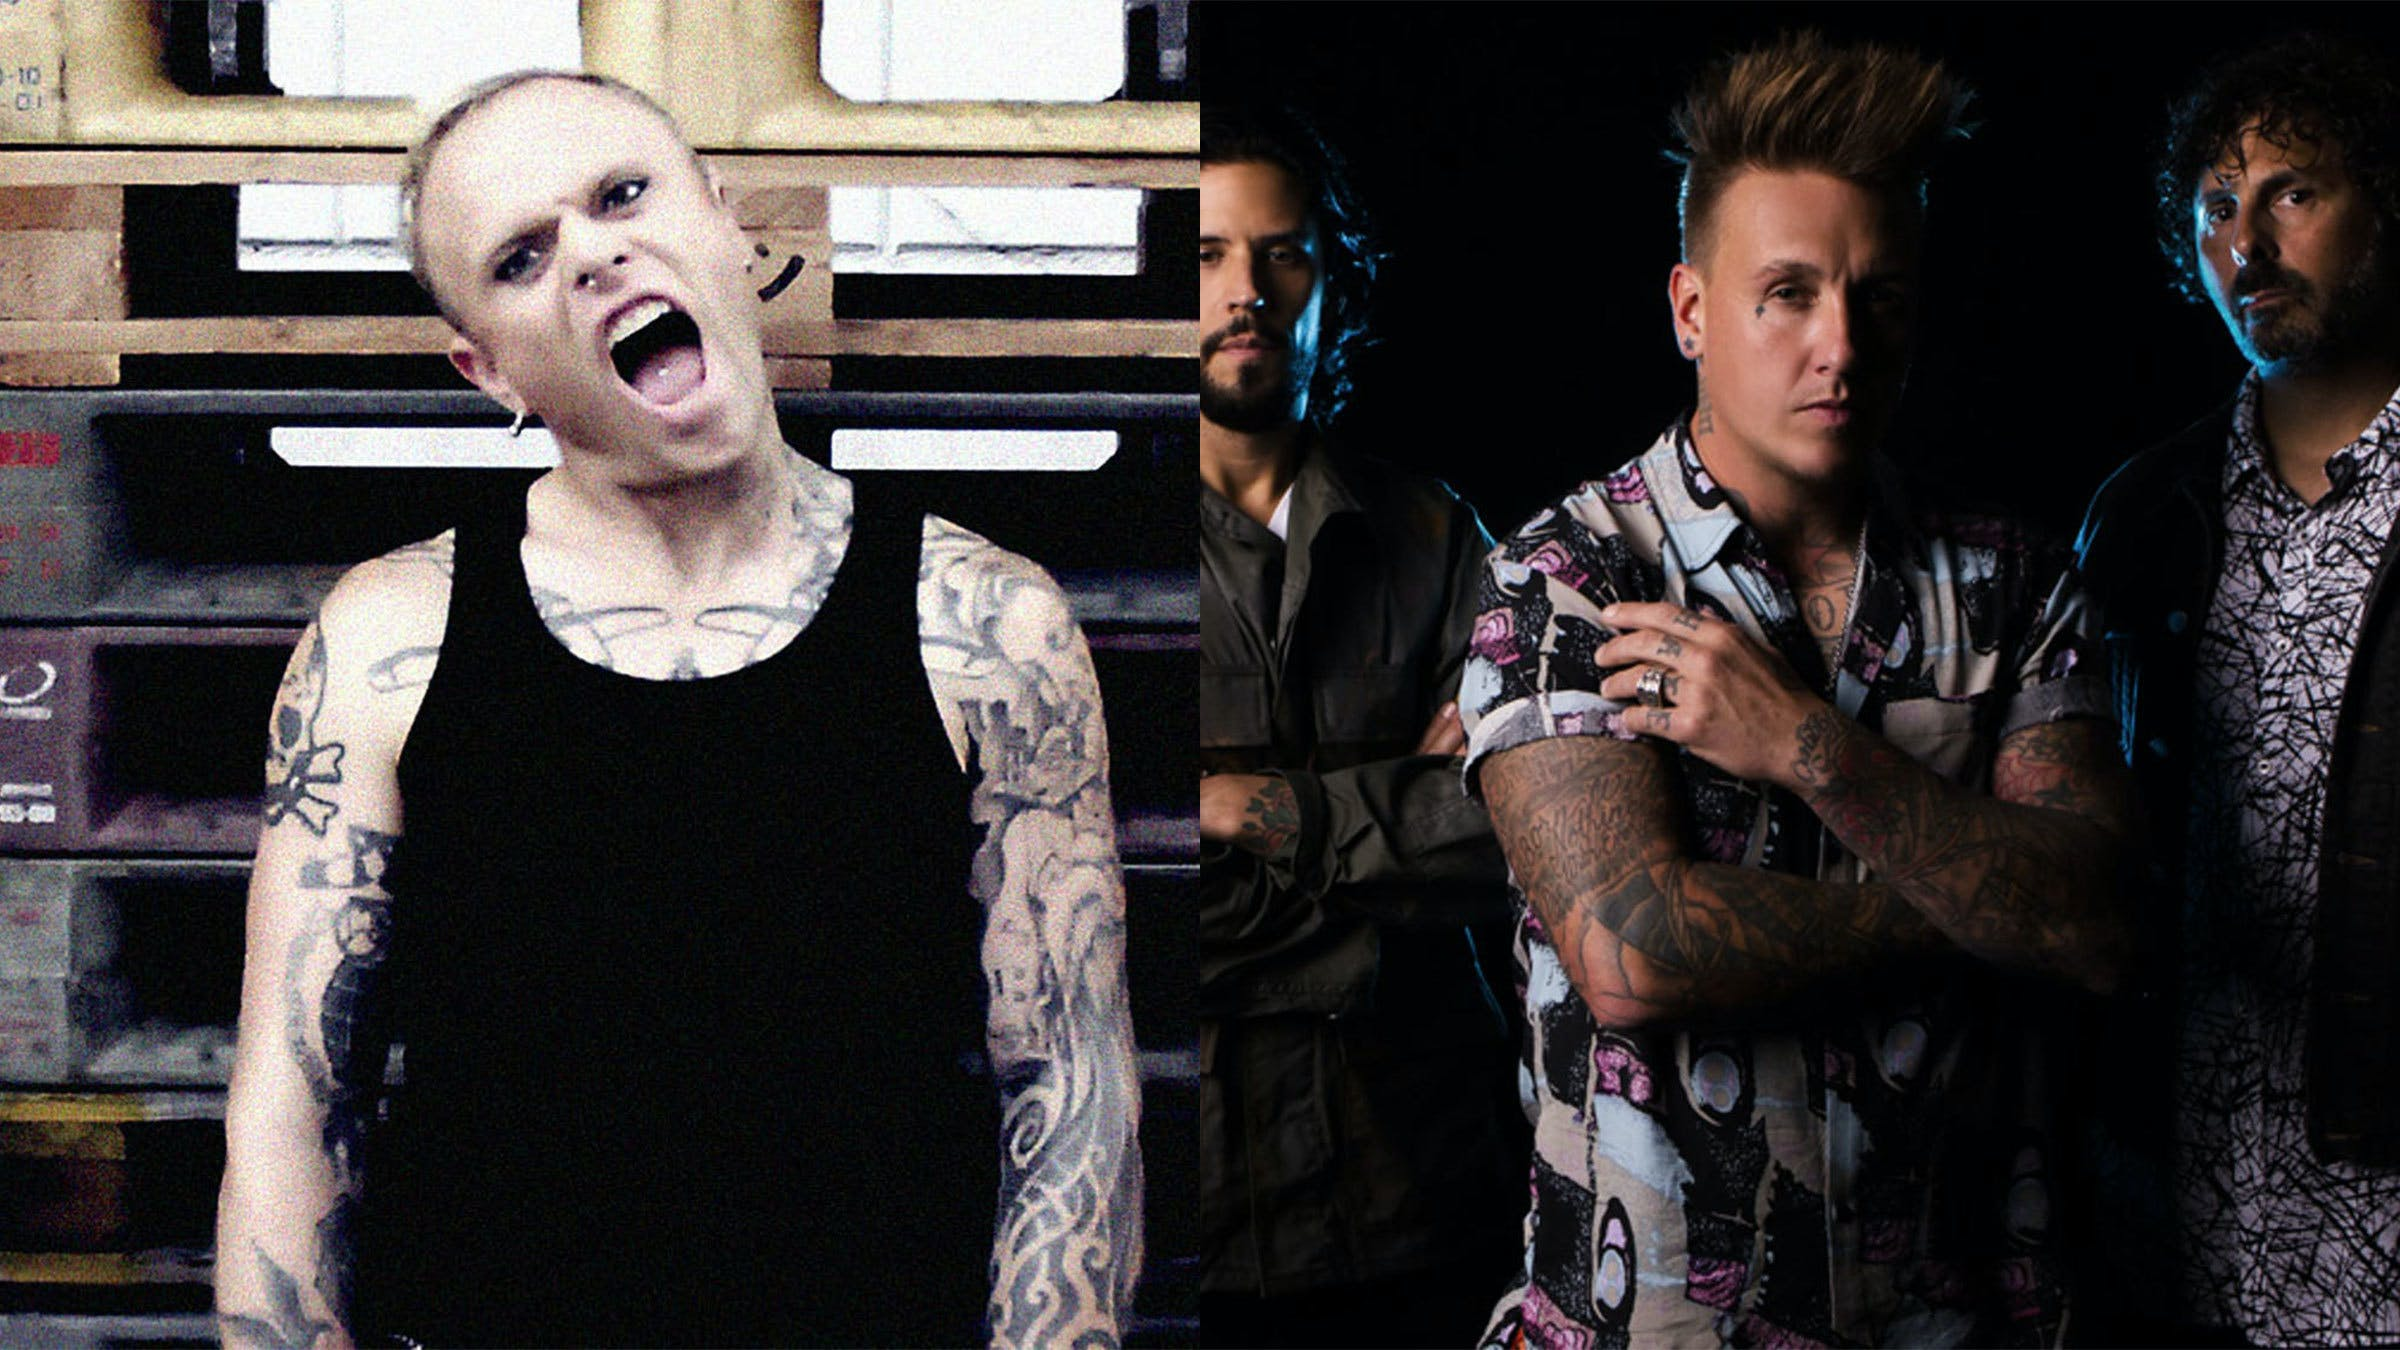 Watch Papa Roach Perform The Prodigy's Firestarter At Sonic Temple Art & Music Festival